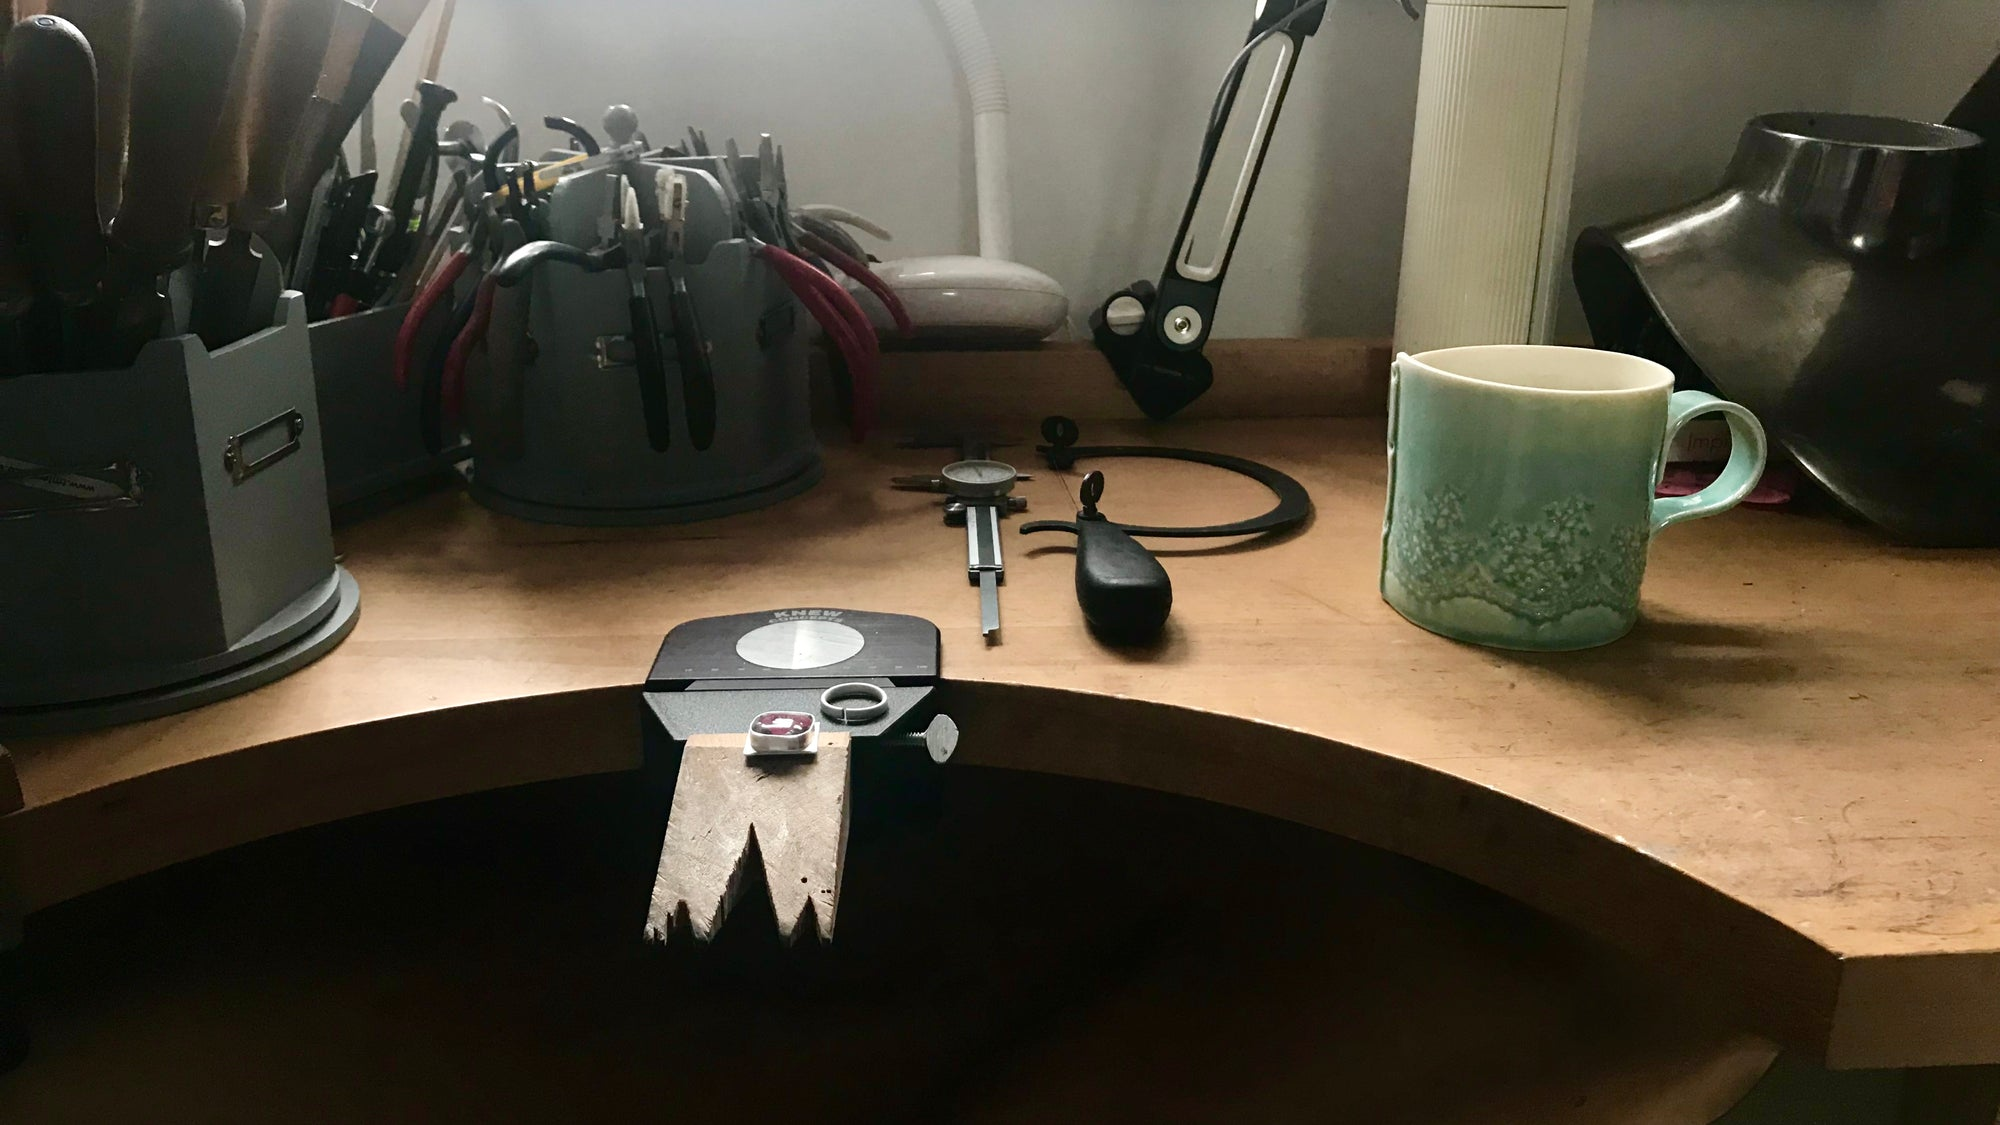 Jewellery bench with a cup of tea